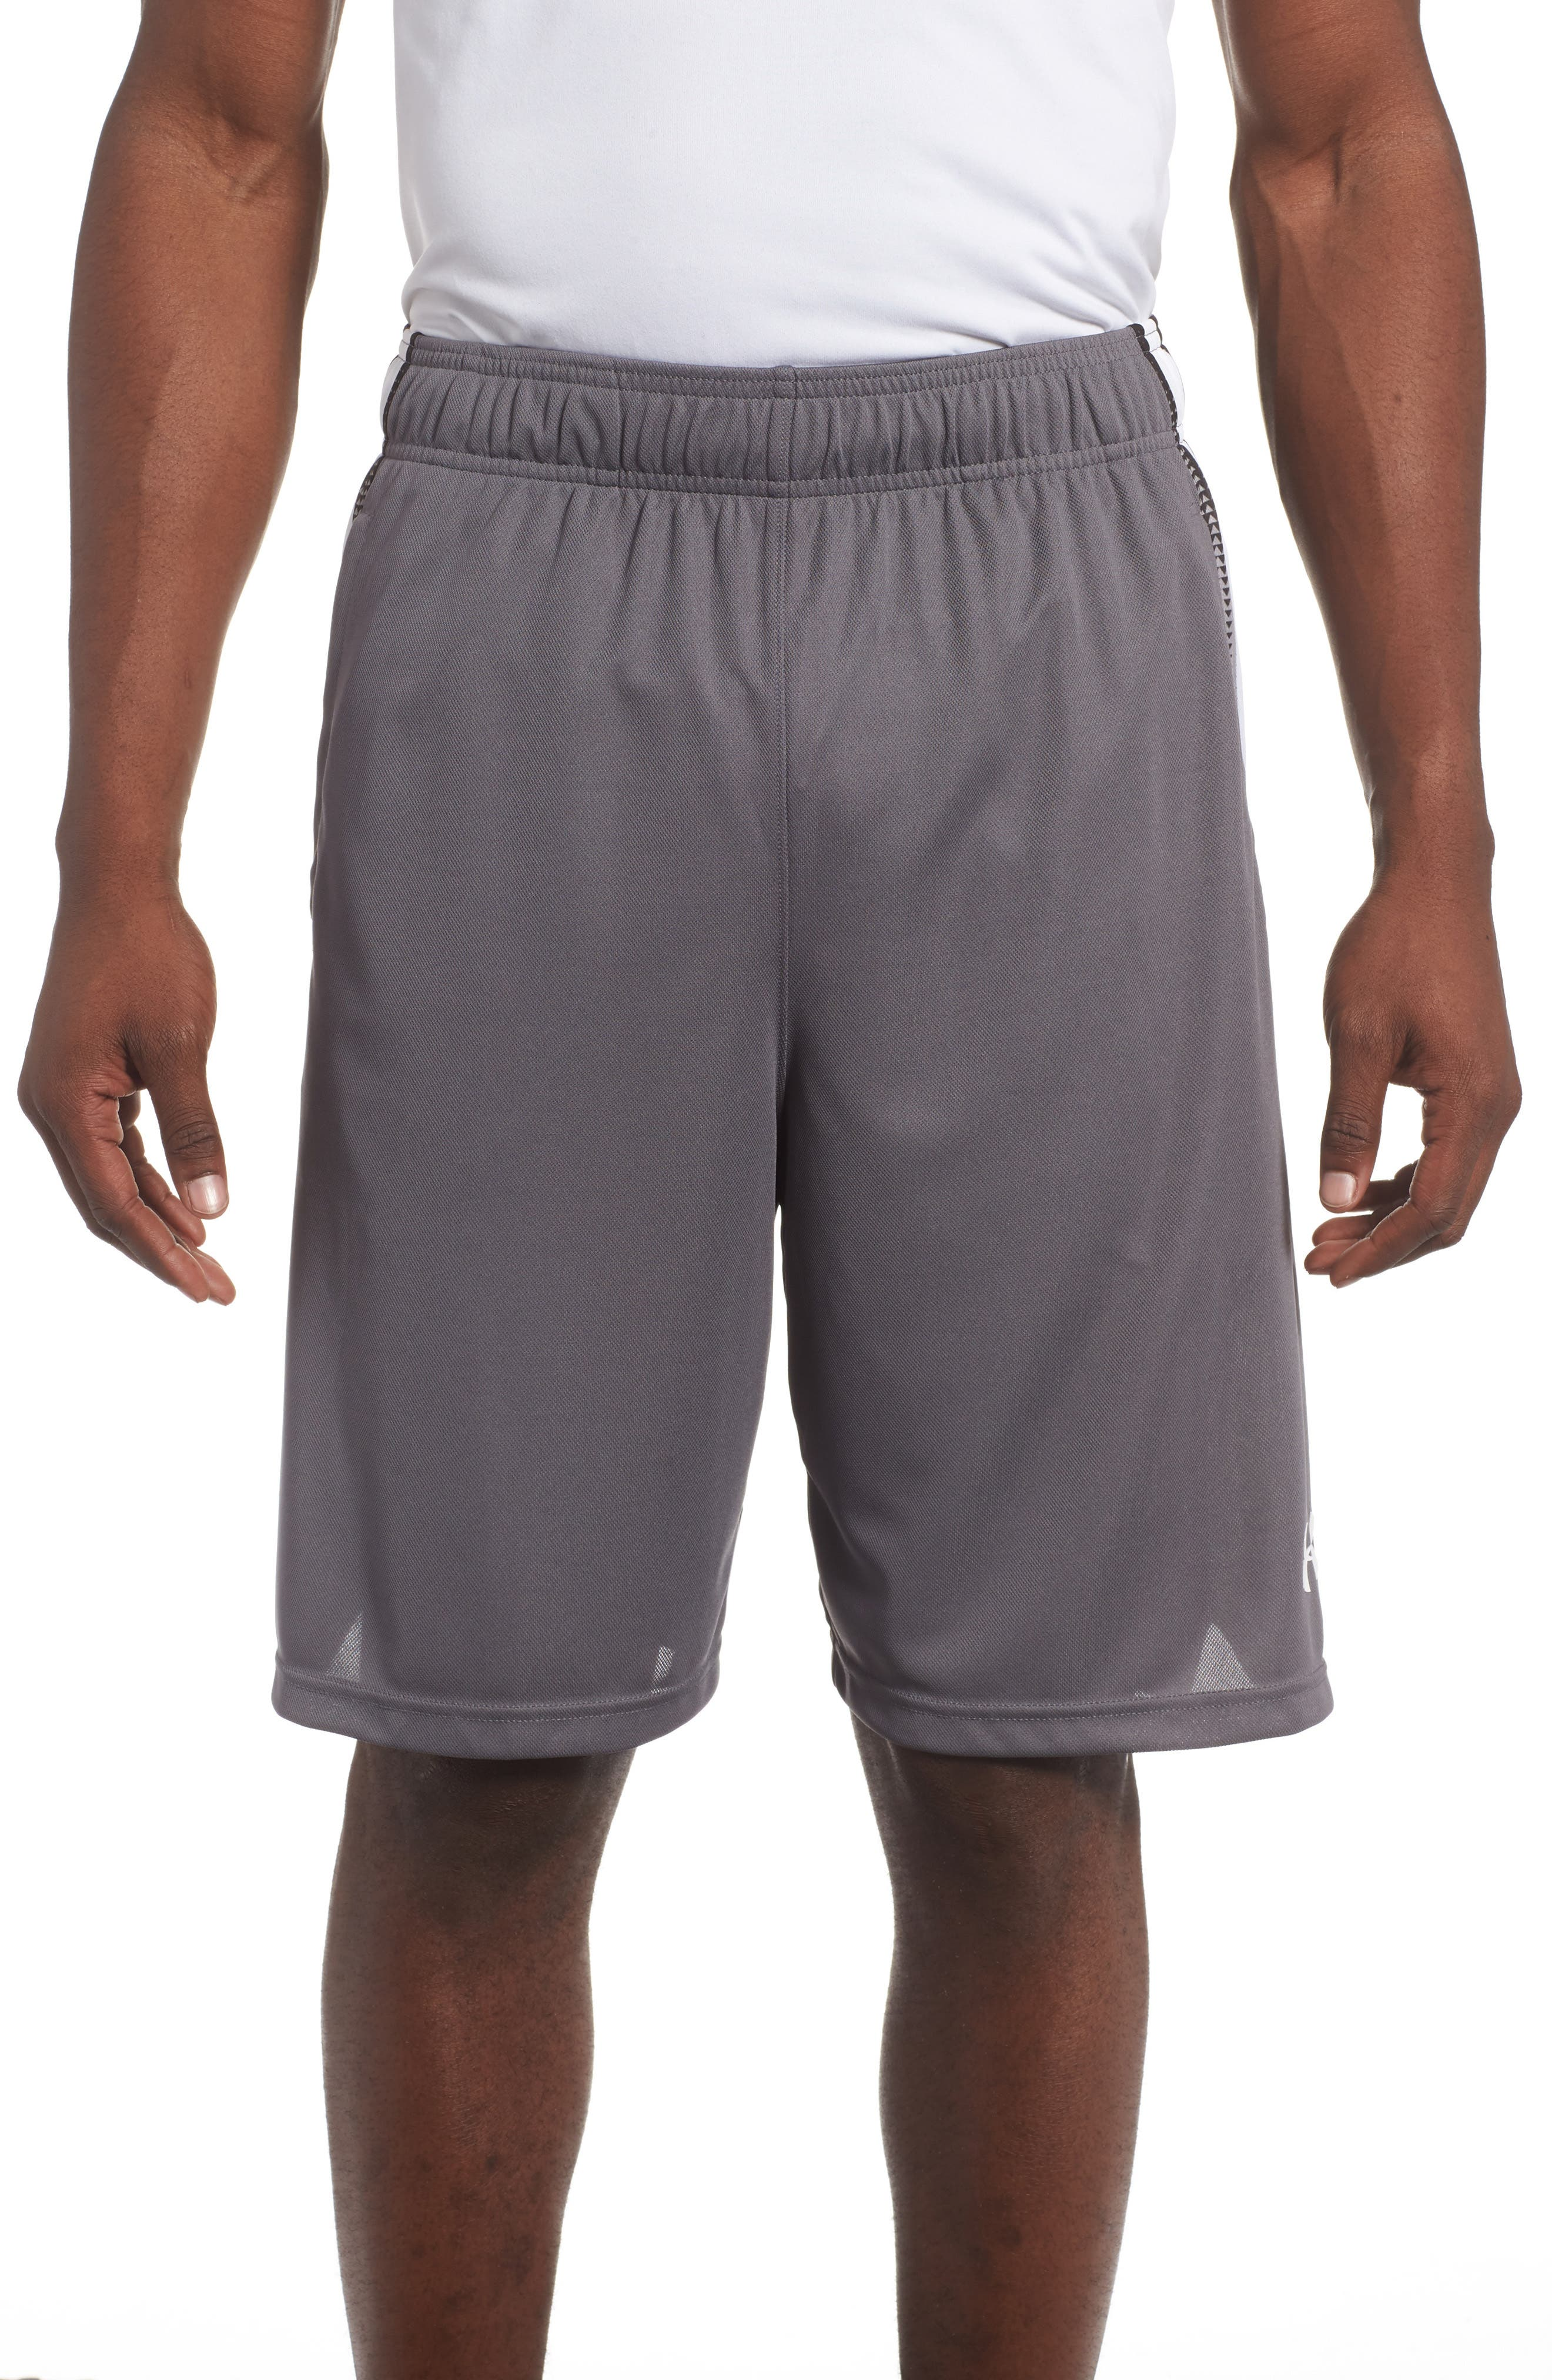 Main Image - Under Armour Select Basketball Shorts